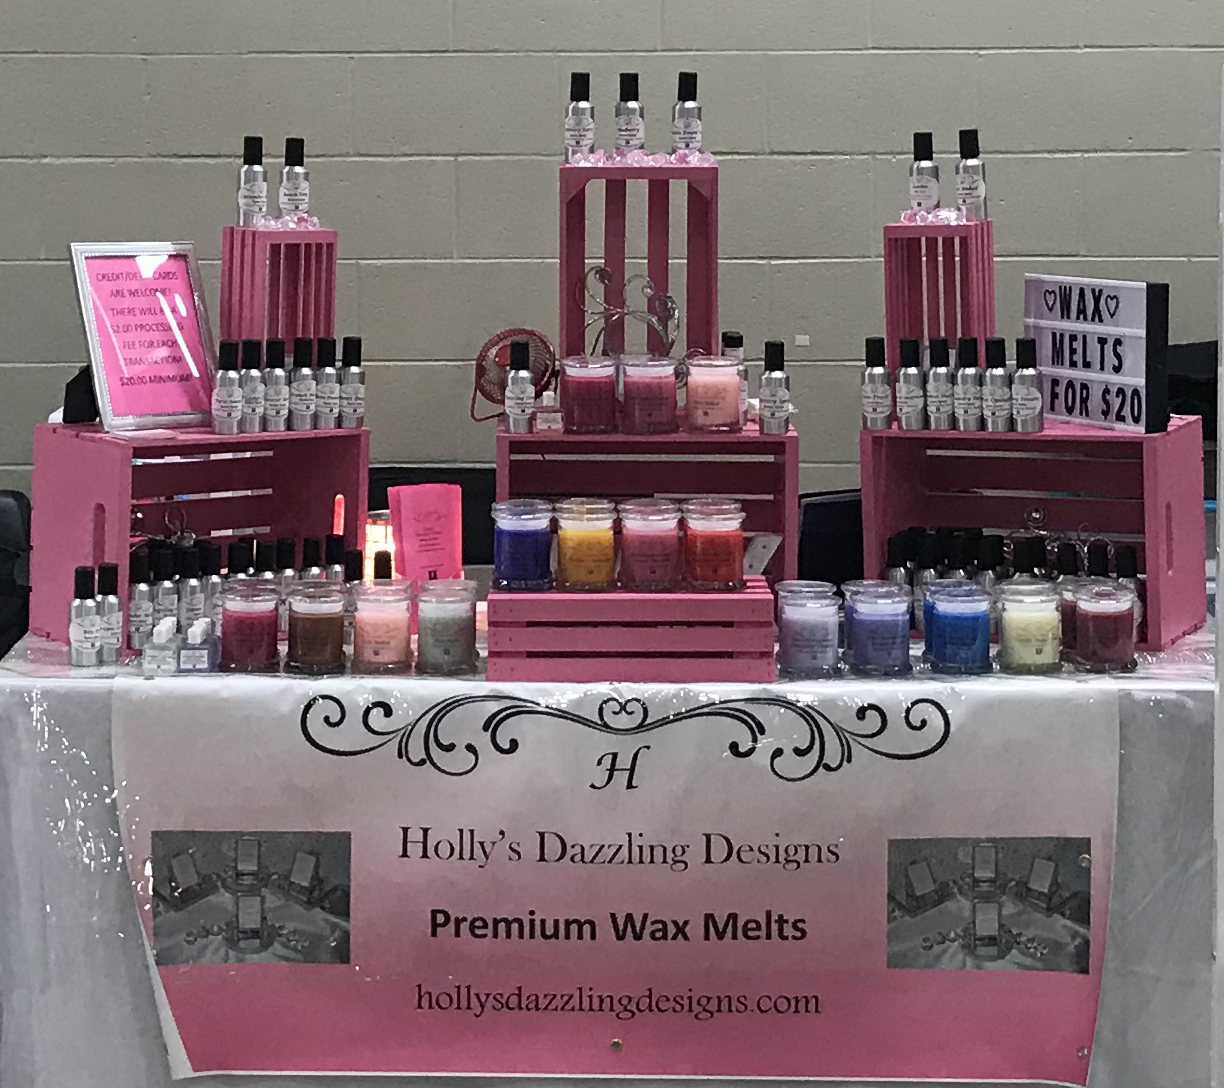 Holly's Dazzling Designs